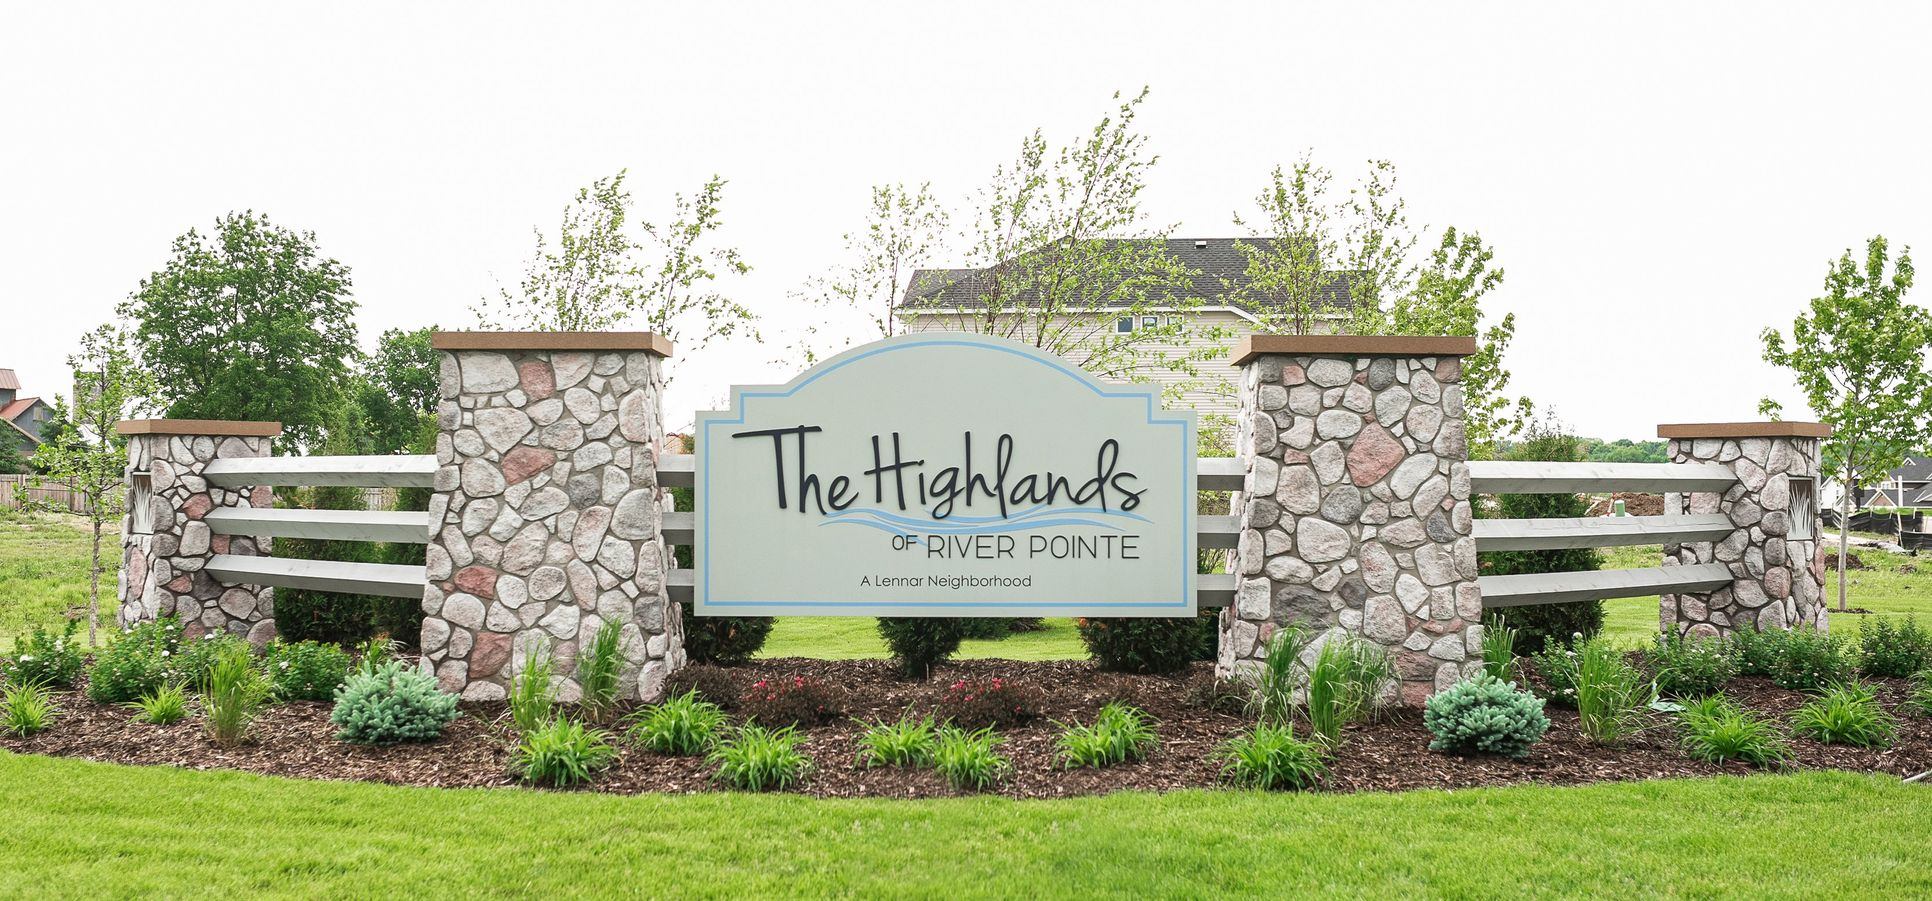 Highlands of River Pointe